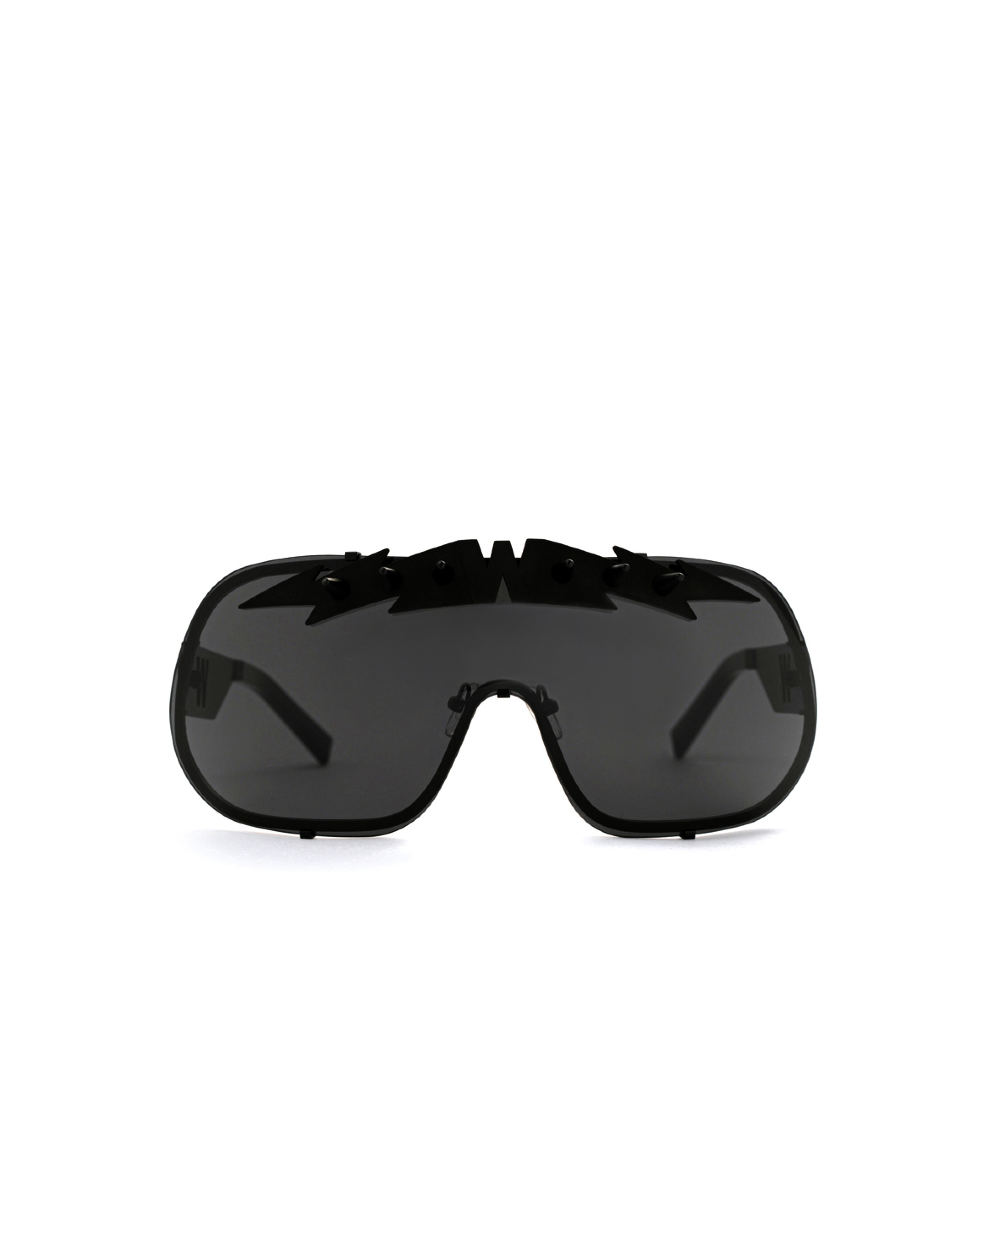 BlitZ Solar Shield Sunglasses. Black & Black Lightning